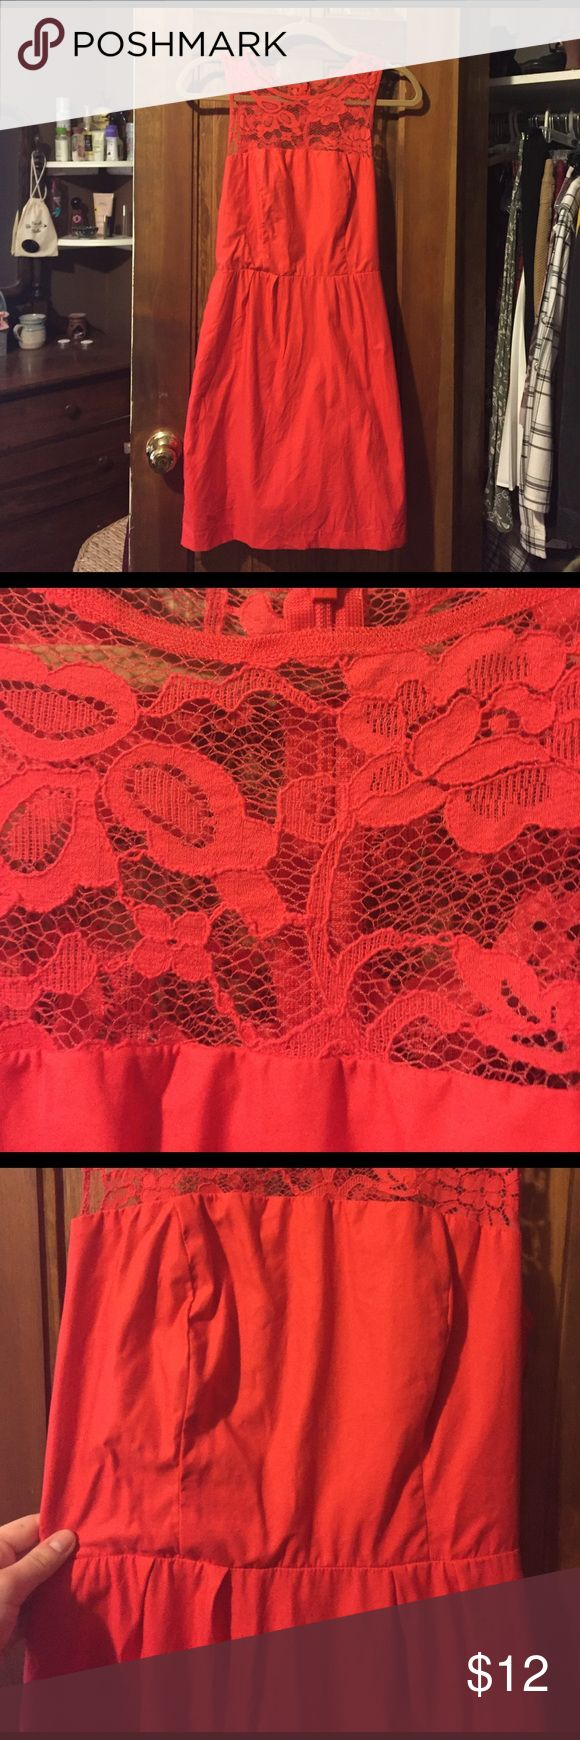 BB Dakota Red Dress Such a cute cotton and lace Sundress for the summer! The back is see through but it would be so cute with a bandeau underneath. Just needs to be ironed and you are good to go! In great condition! BB Dakota Dresses